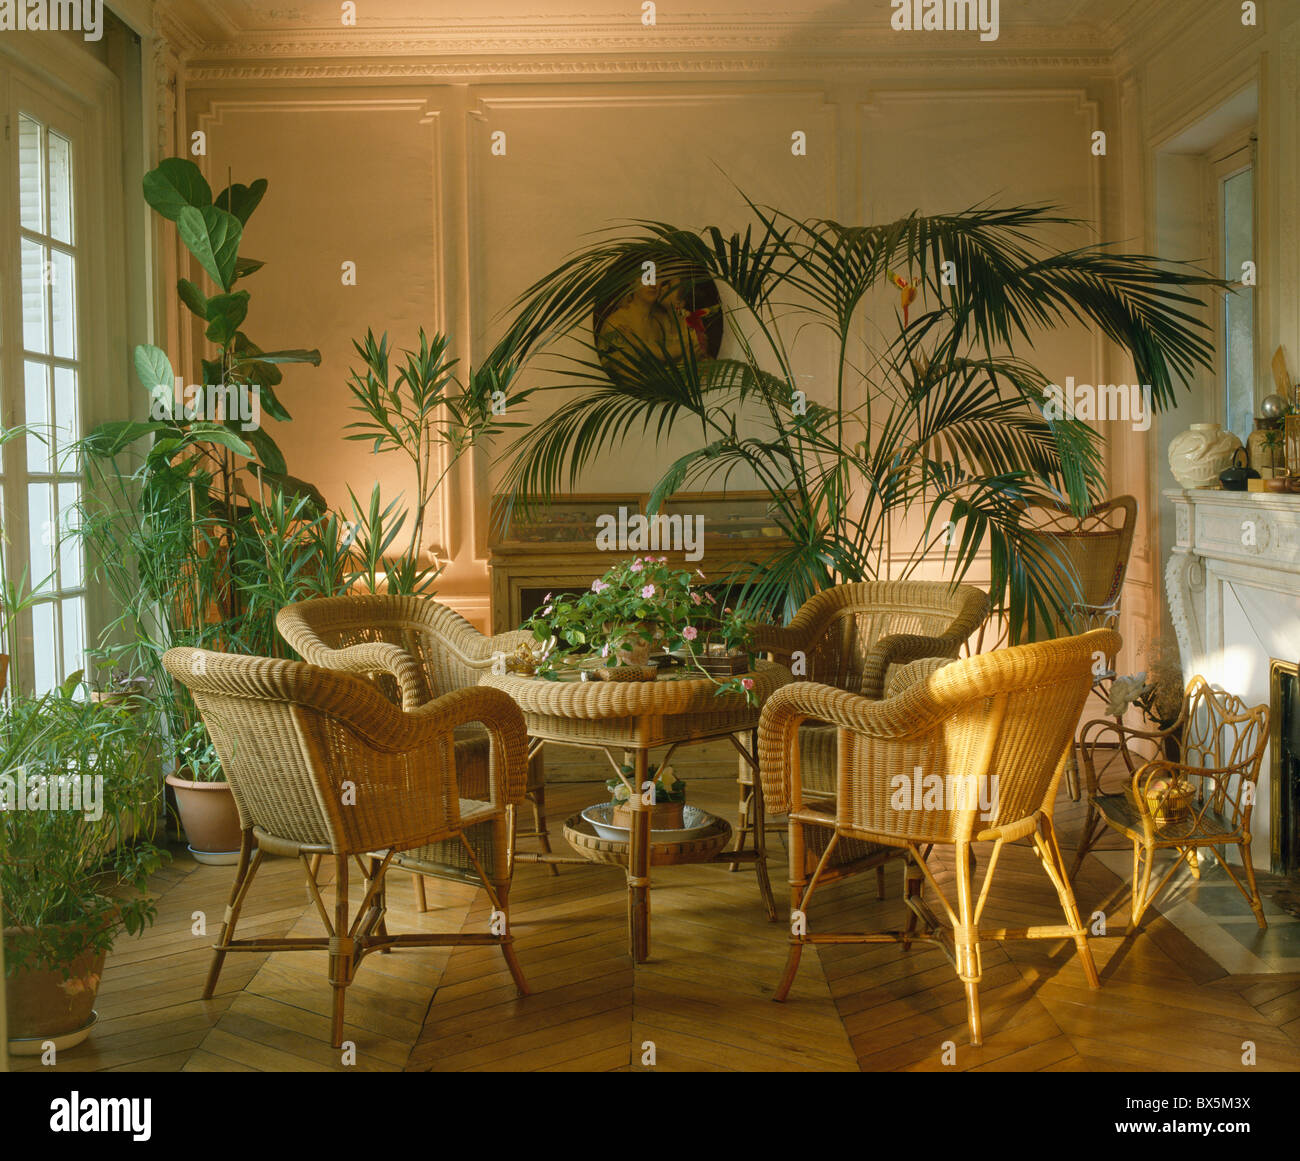 Lighting for houseplants Backyard Cane Chairs And Lush Green Houseplants In French Townhouse Dining Room With Uplighting Alamy Cane Chairs And Lush Green Houseplants In French Townhouse Dining